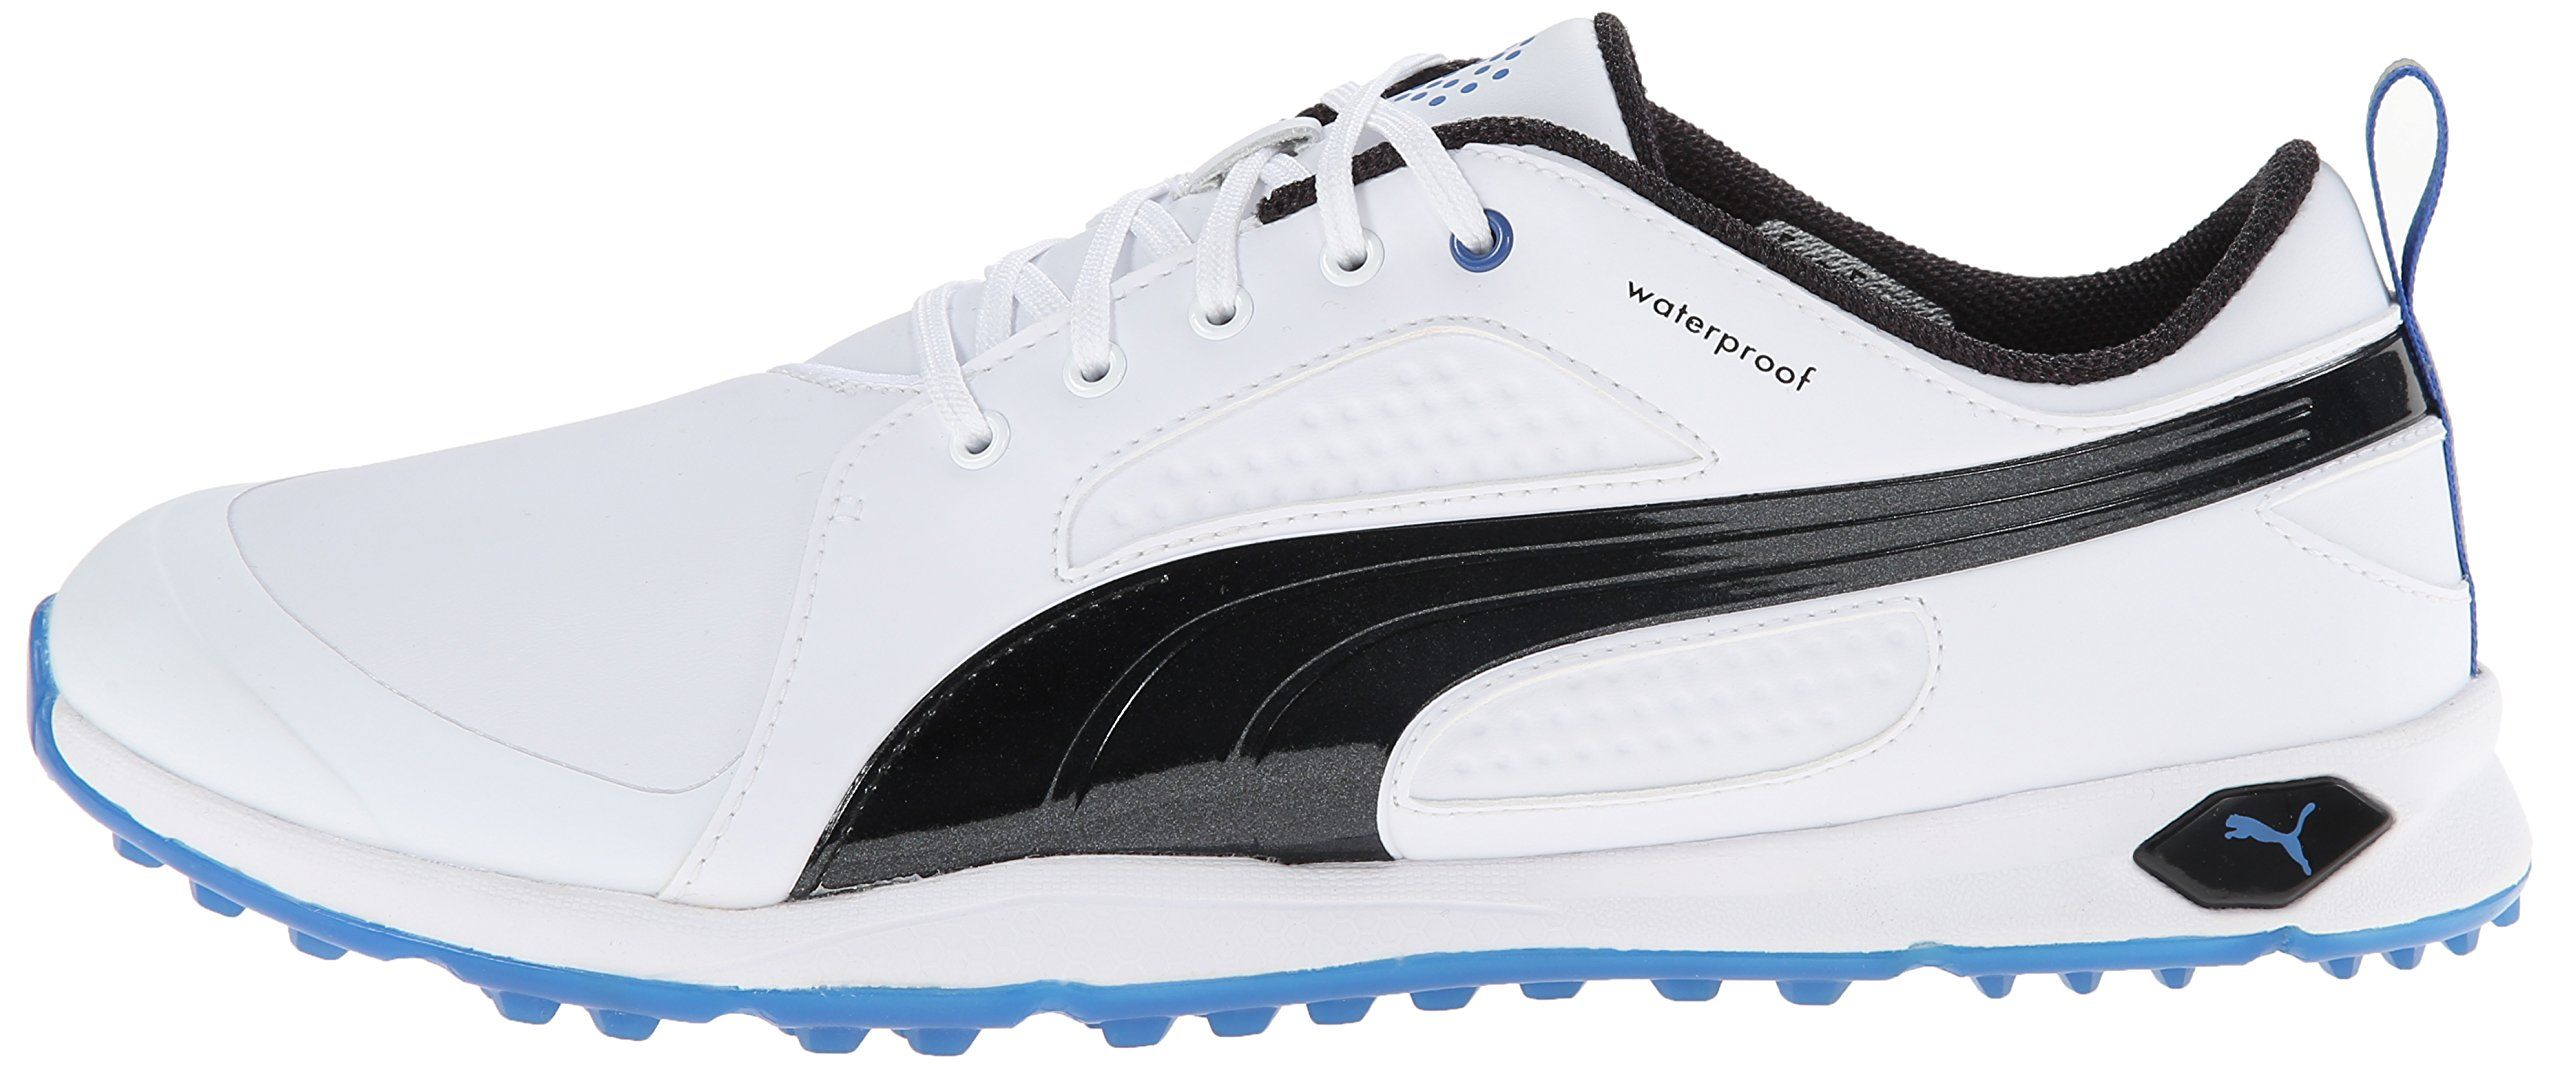 93701379be8a25 Golf Shoes     PUMA Mens Biofly Golf Shoe White Black Strong Blue 10 M US      A lot more info can be found at the picture url. (This is an affiliate  link).